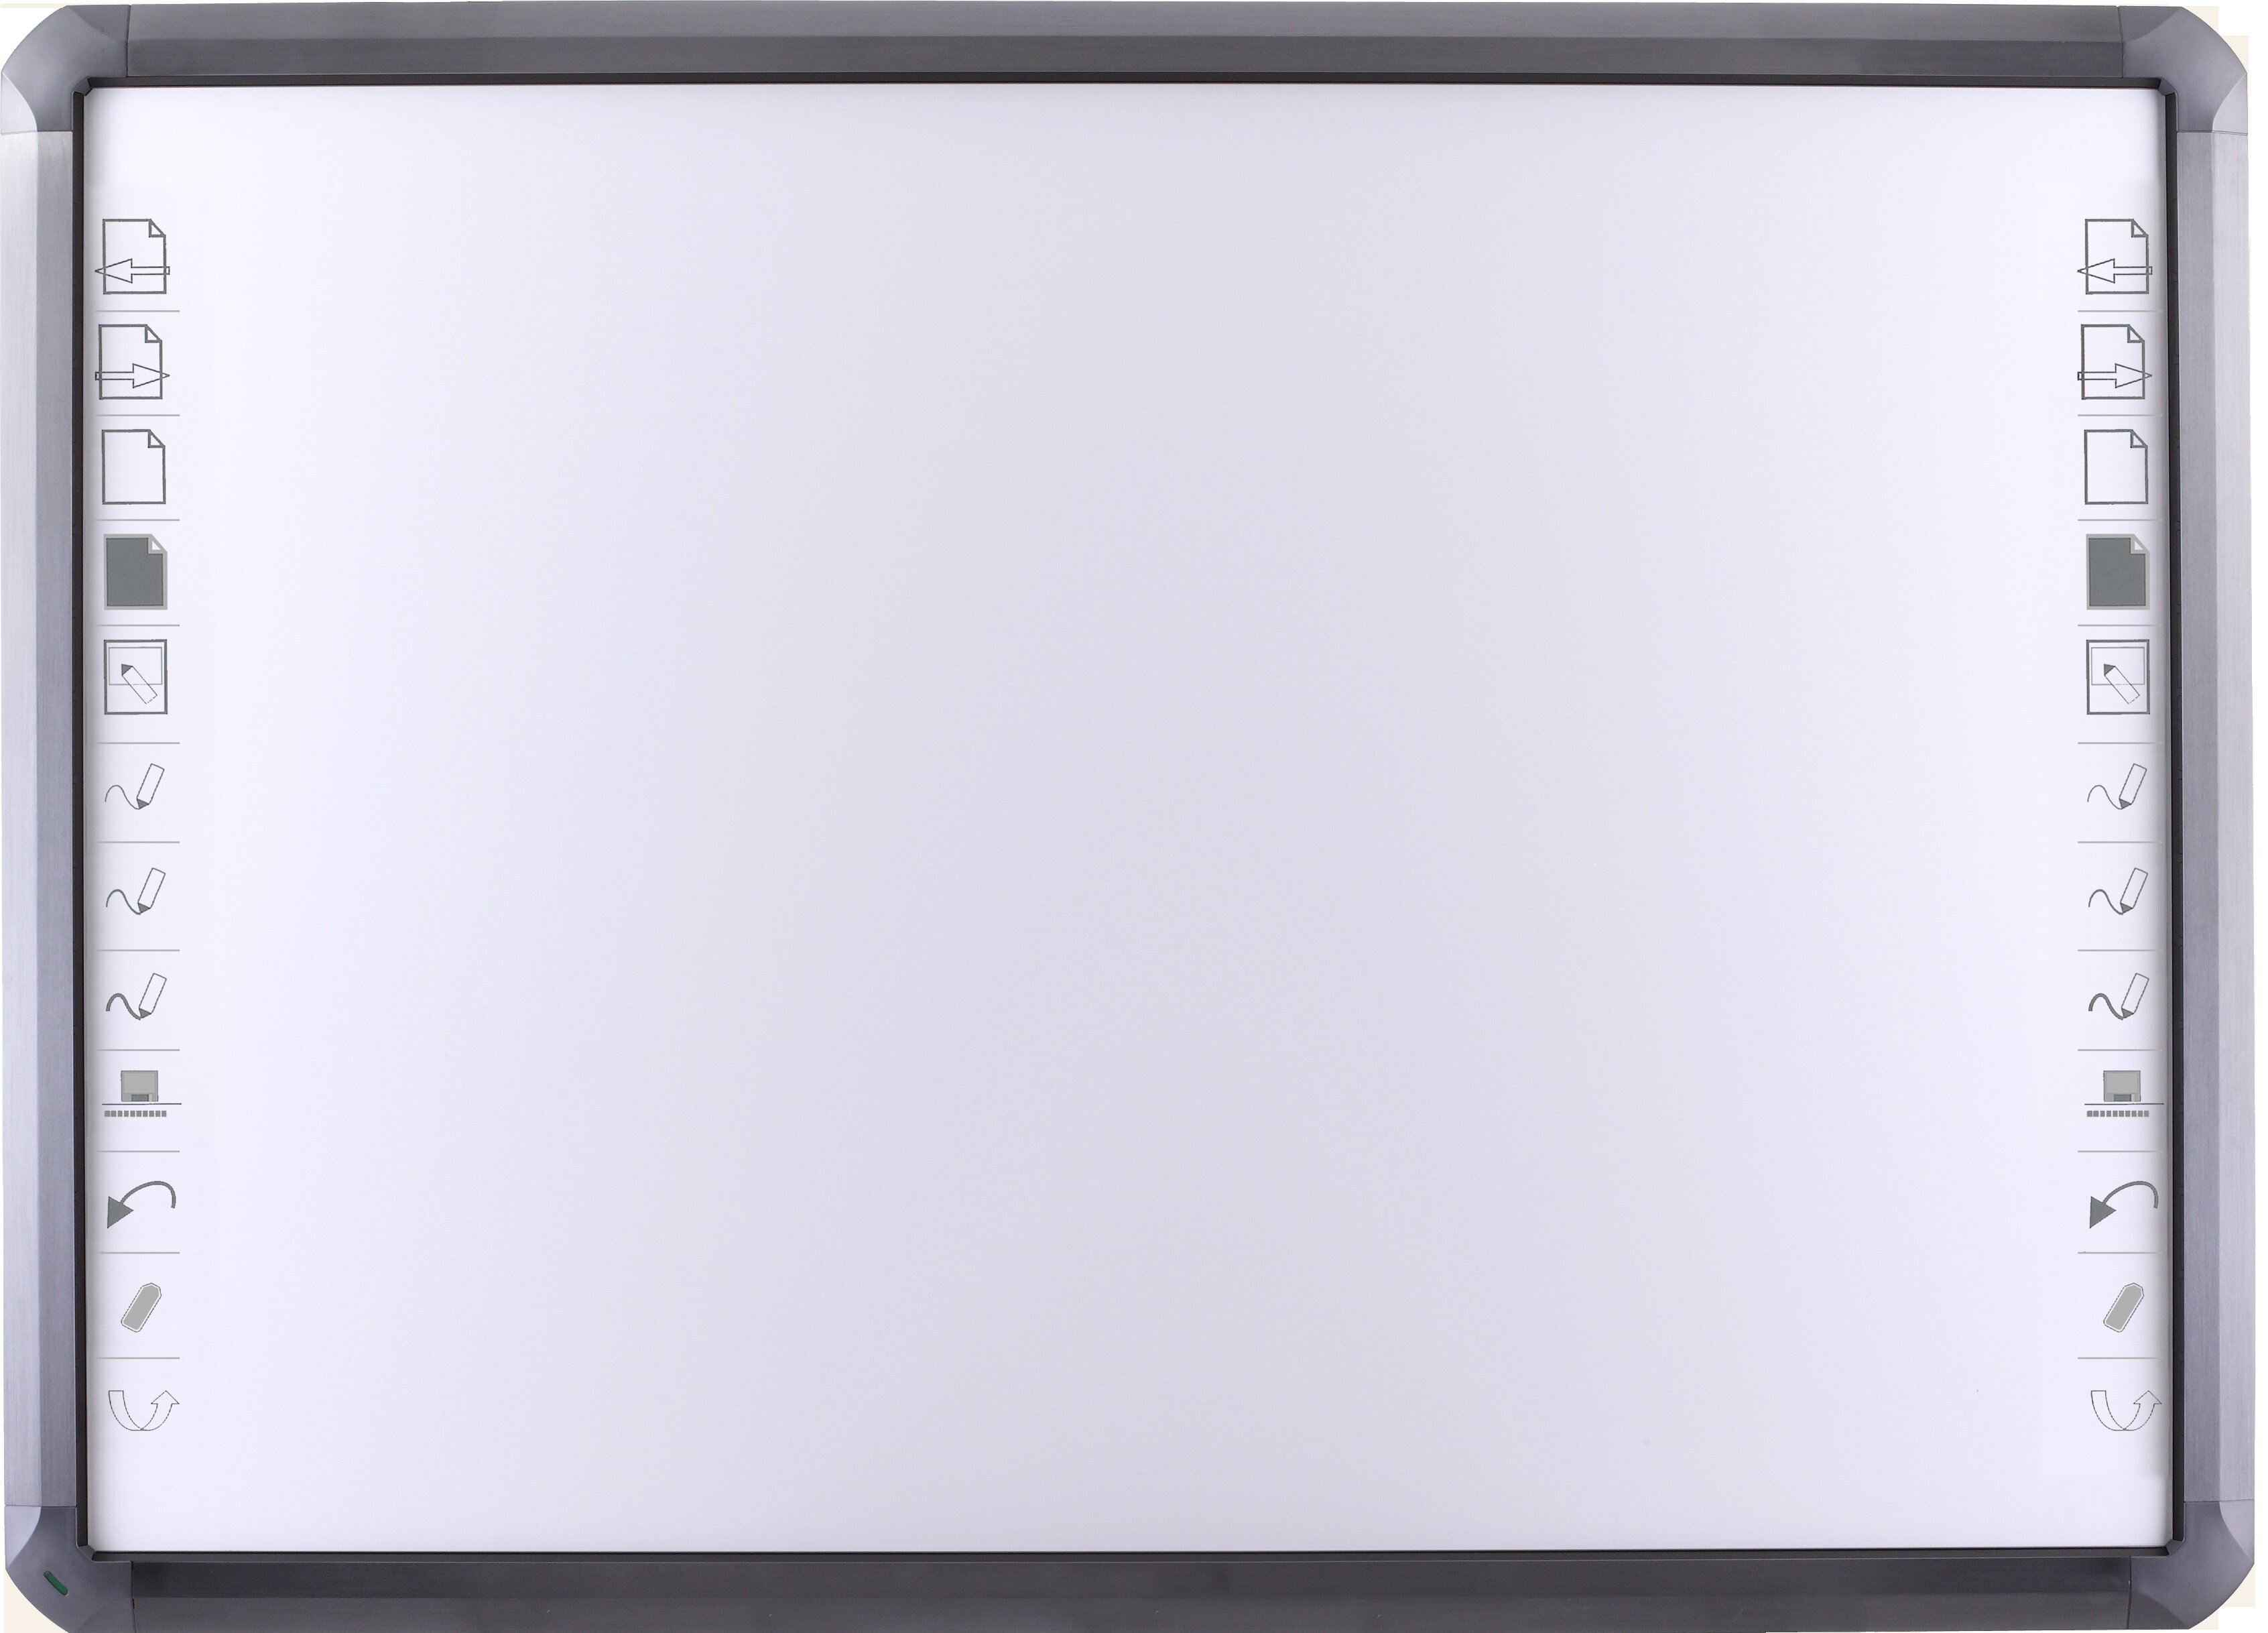 Interactive Whiteboard Market Share 2019-2024 | Industry Growth Analysis Report, Top Manufactures, Growth Rate & Forecast